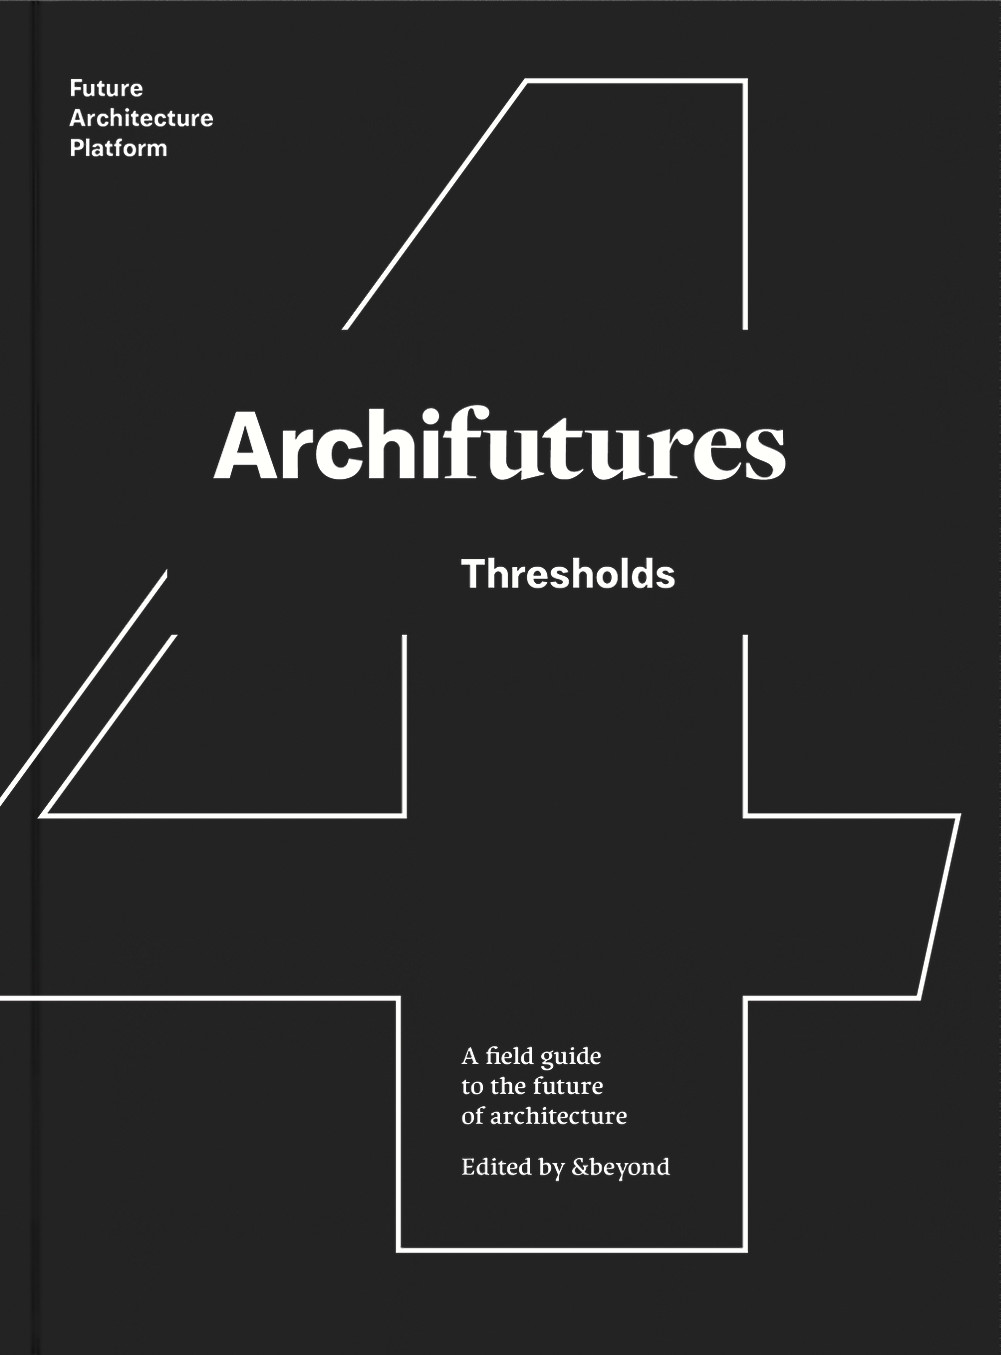 "&beyond collective ""Archifutures"" print and digital publication series with Future Architecture platform and dpr-barcelona"